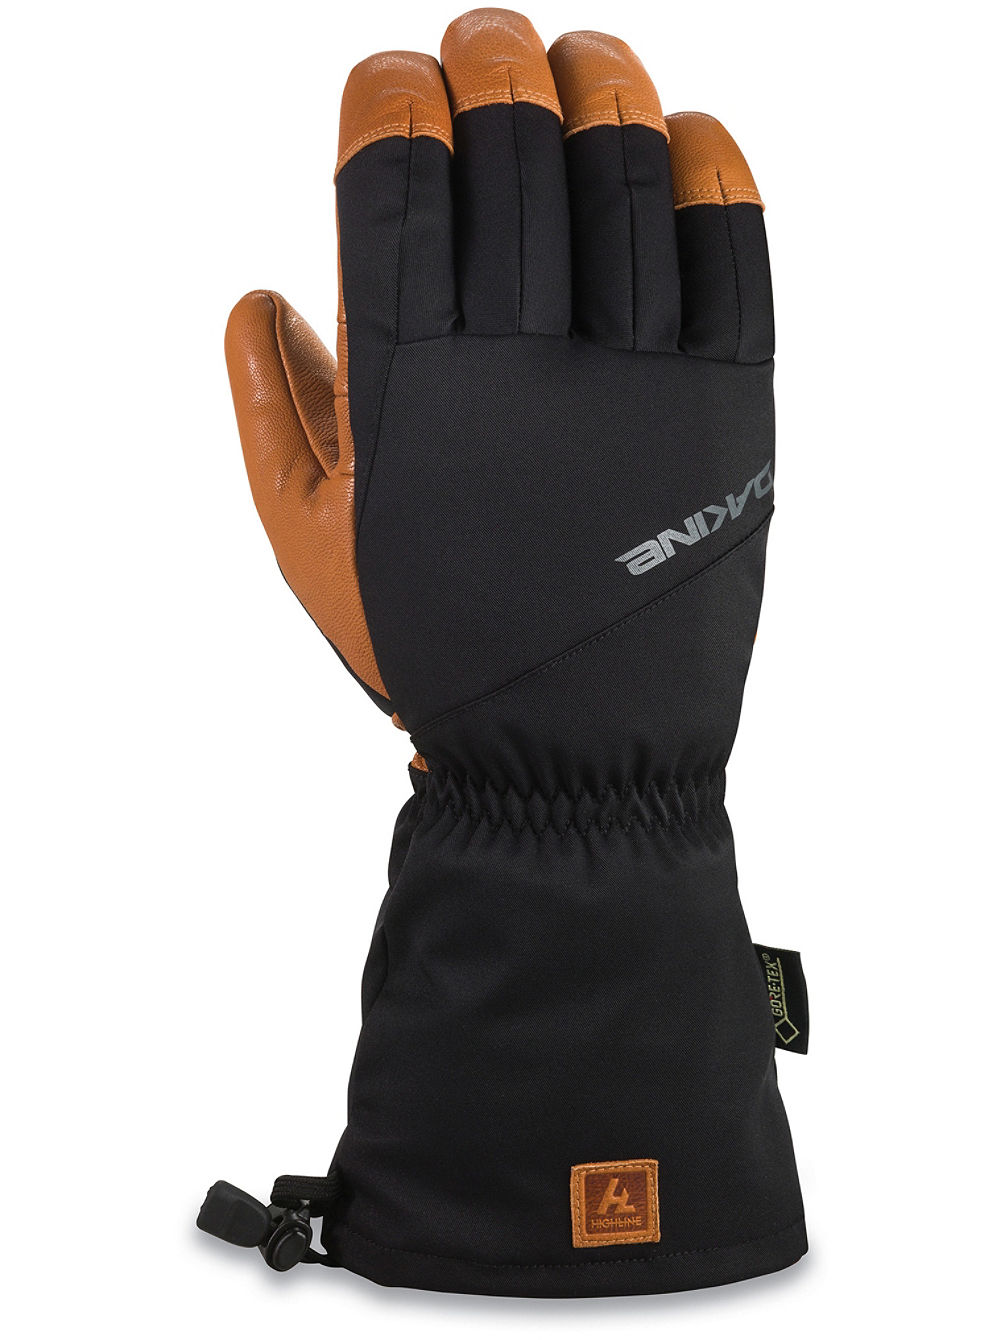 Rover Gloves